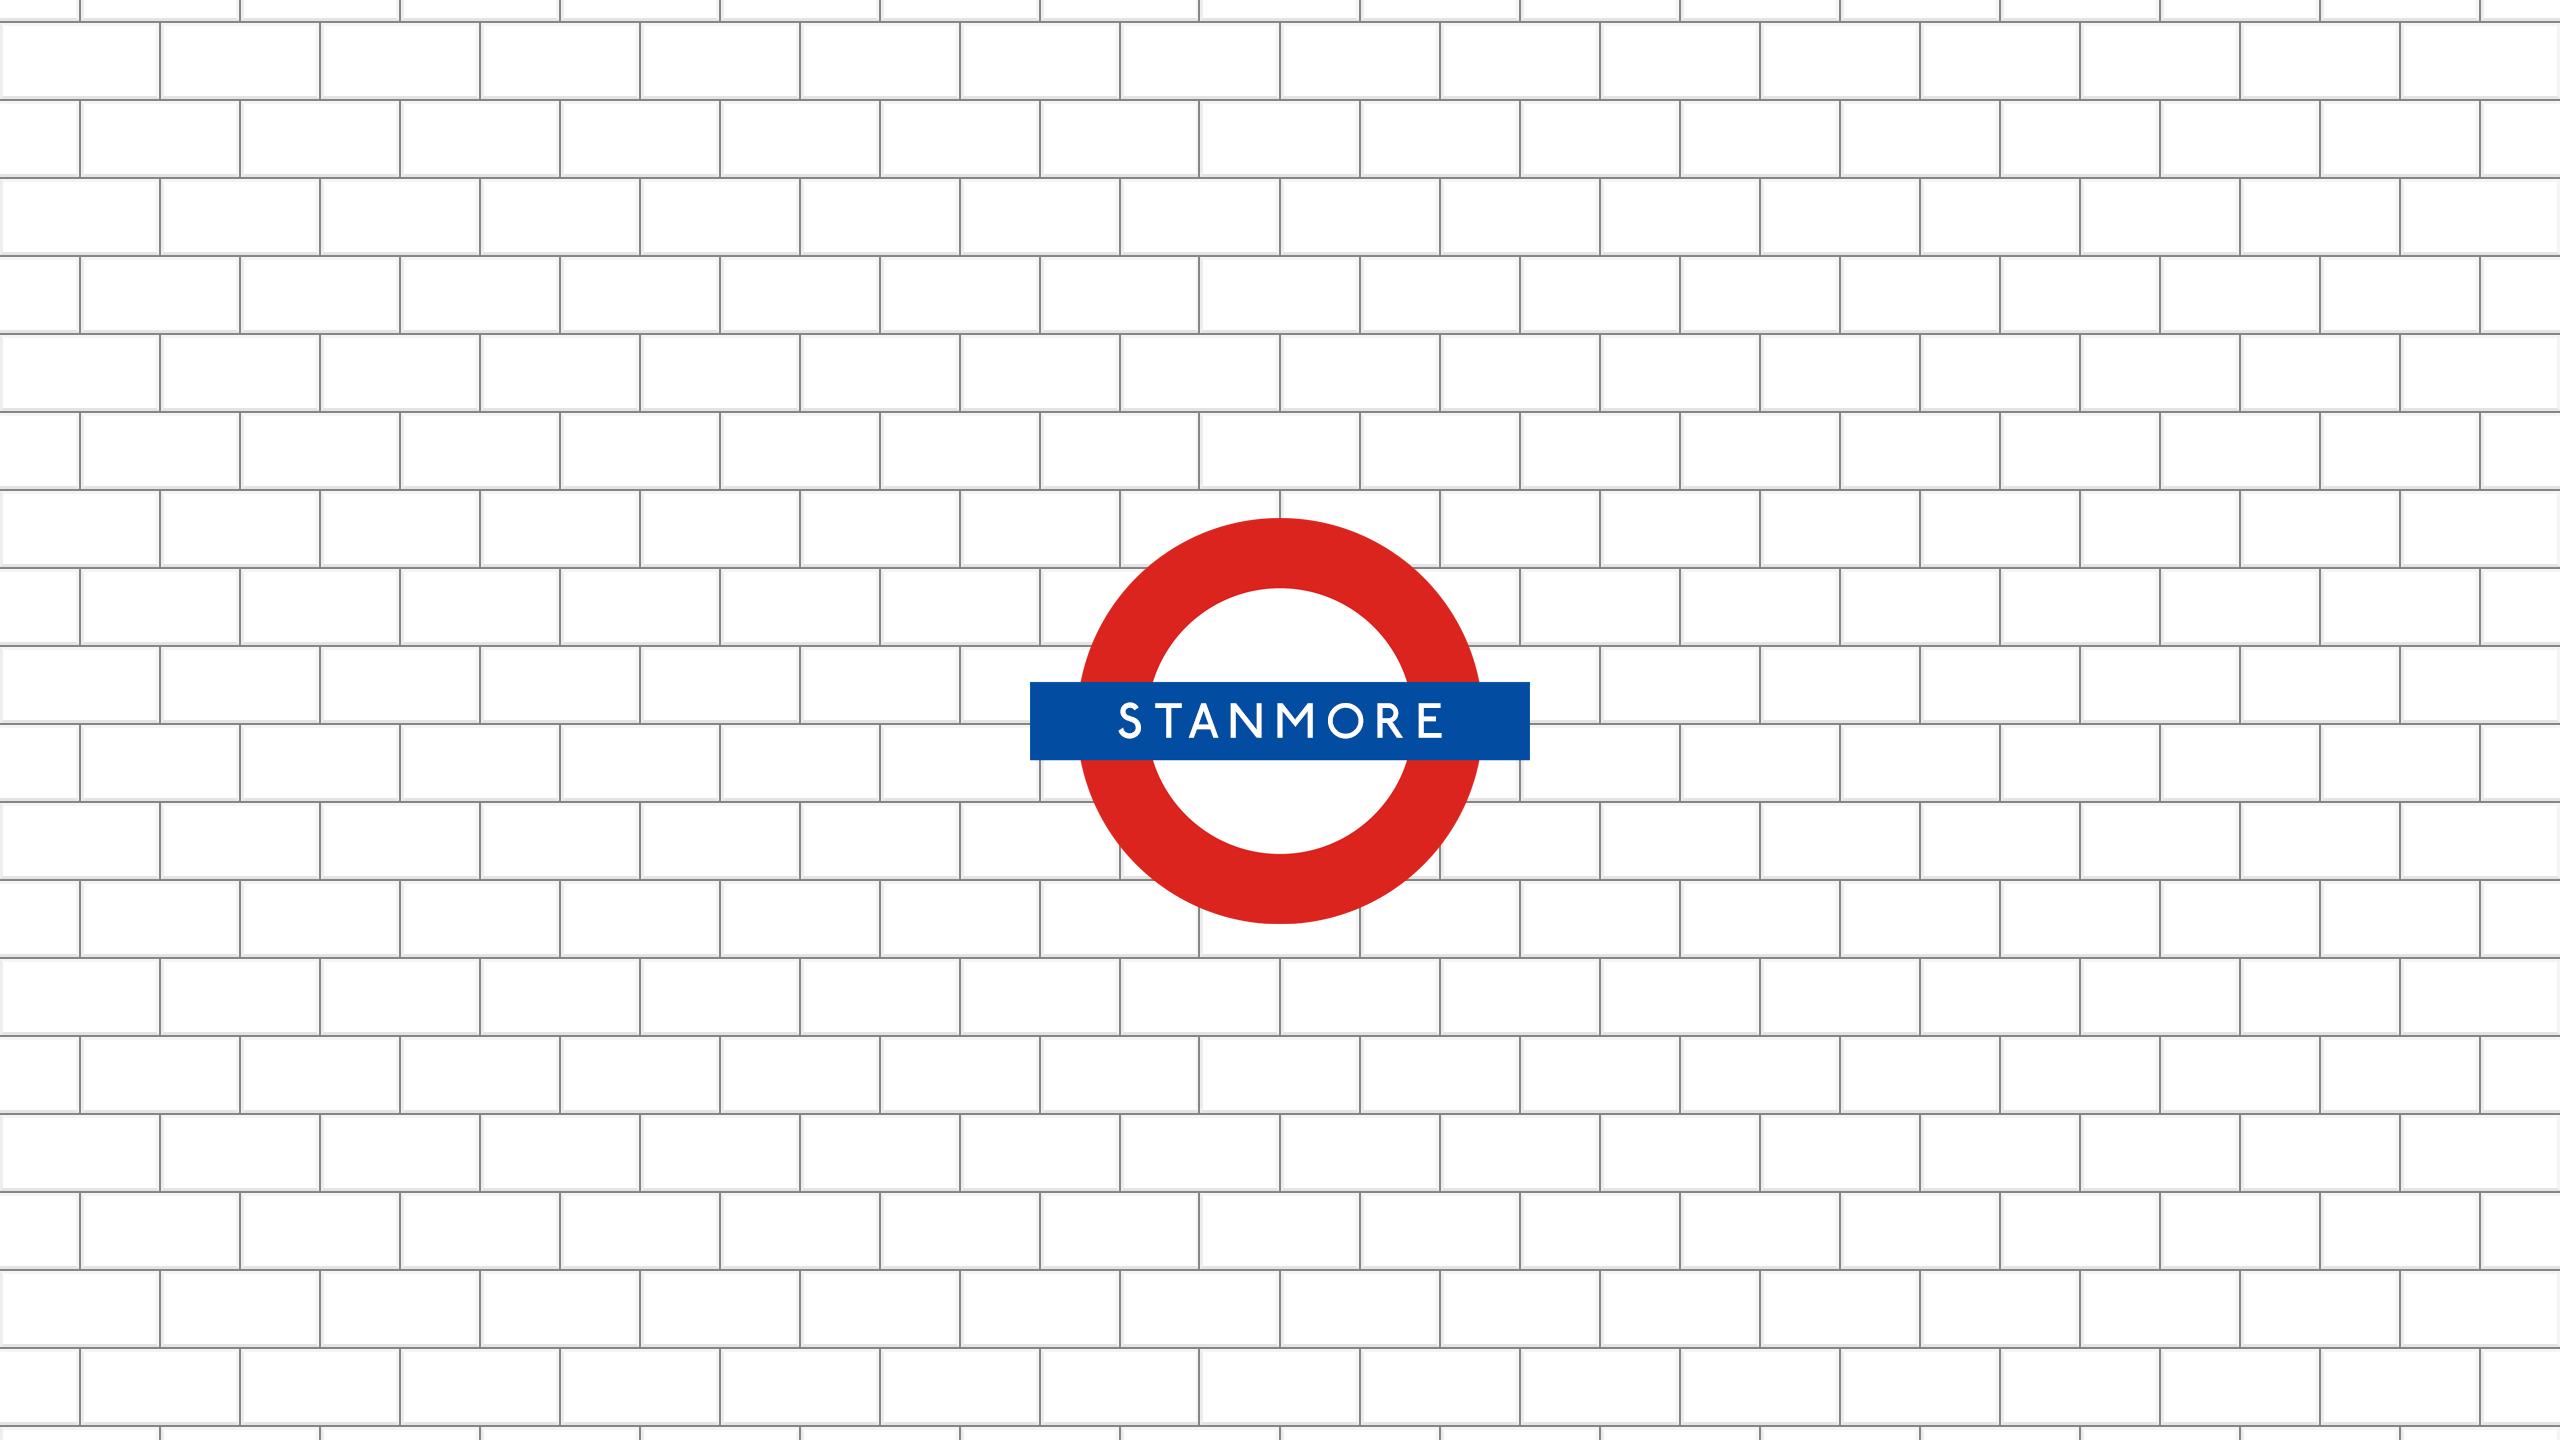 Stanmore